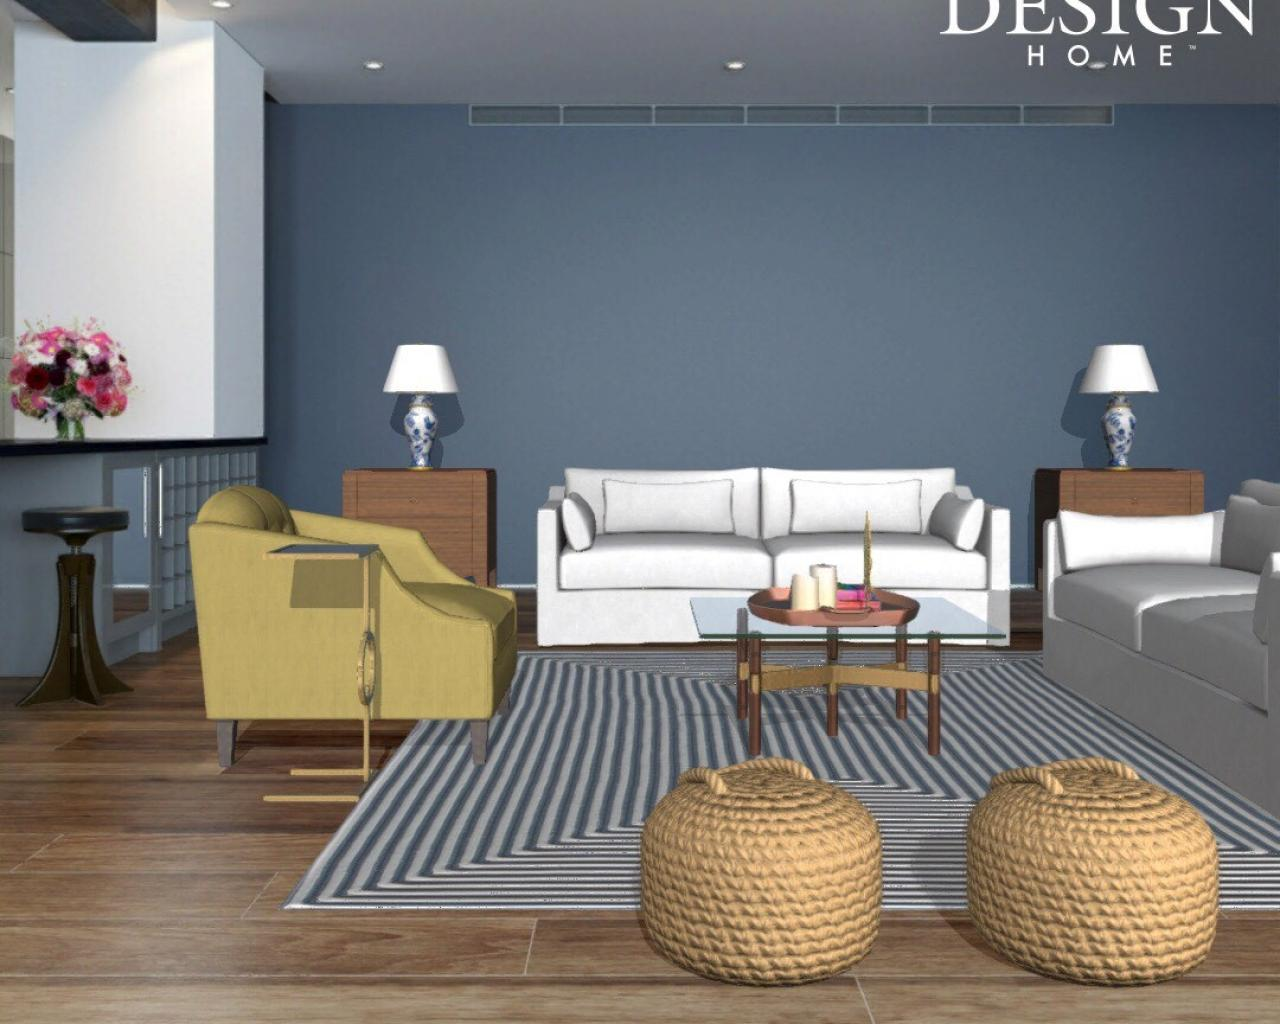 Be an interior designer with design home app hgtv 39 s Room design app